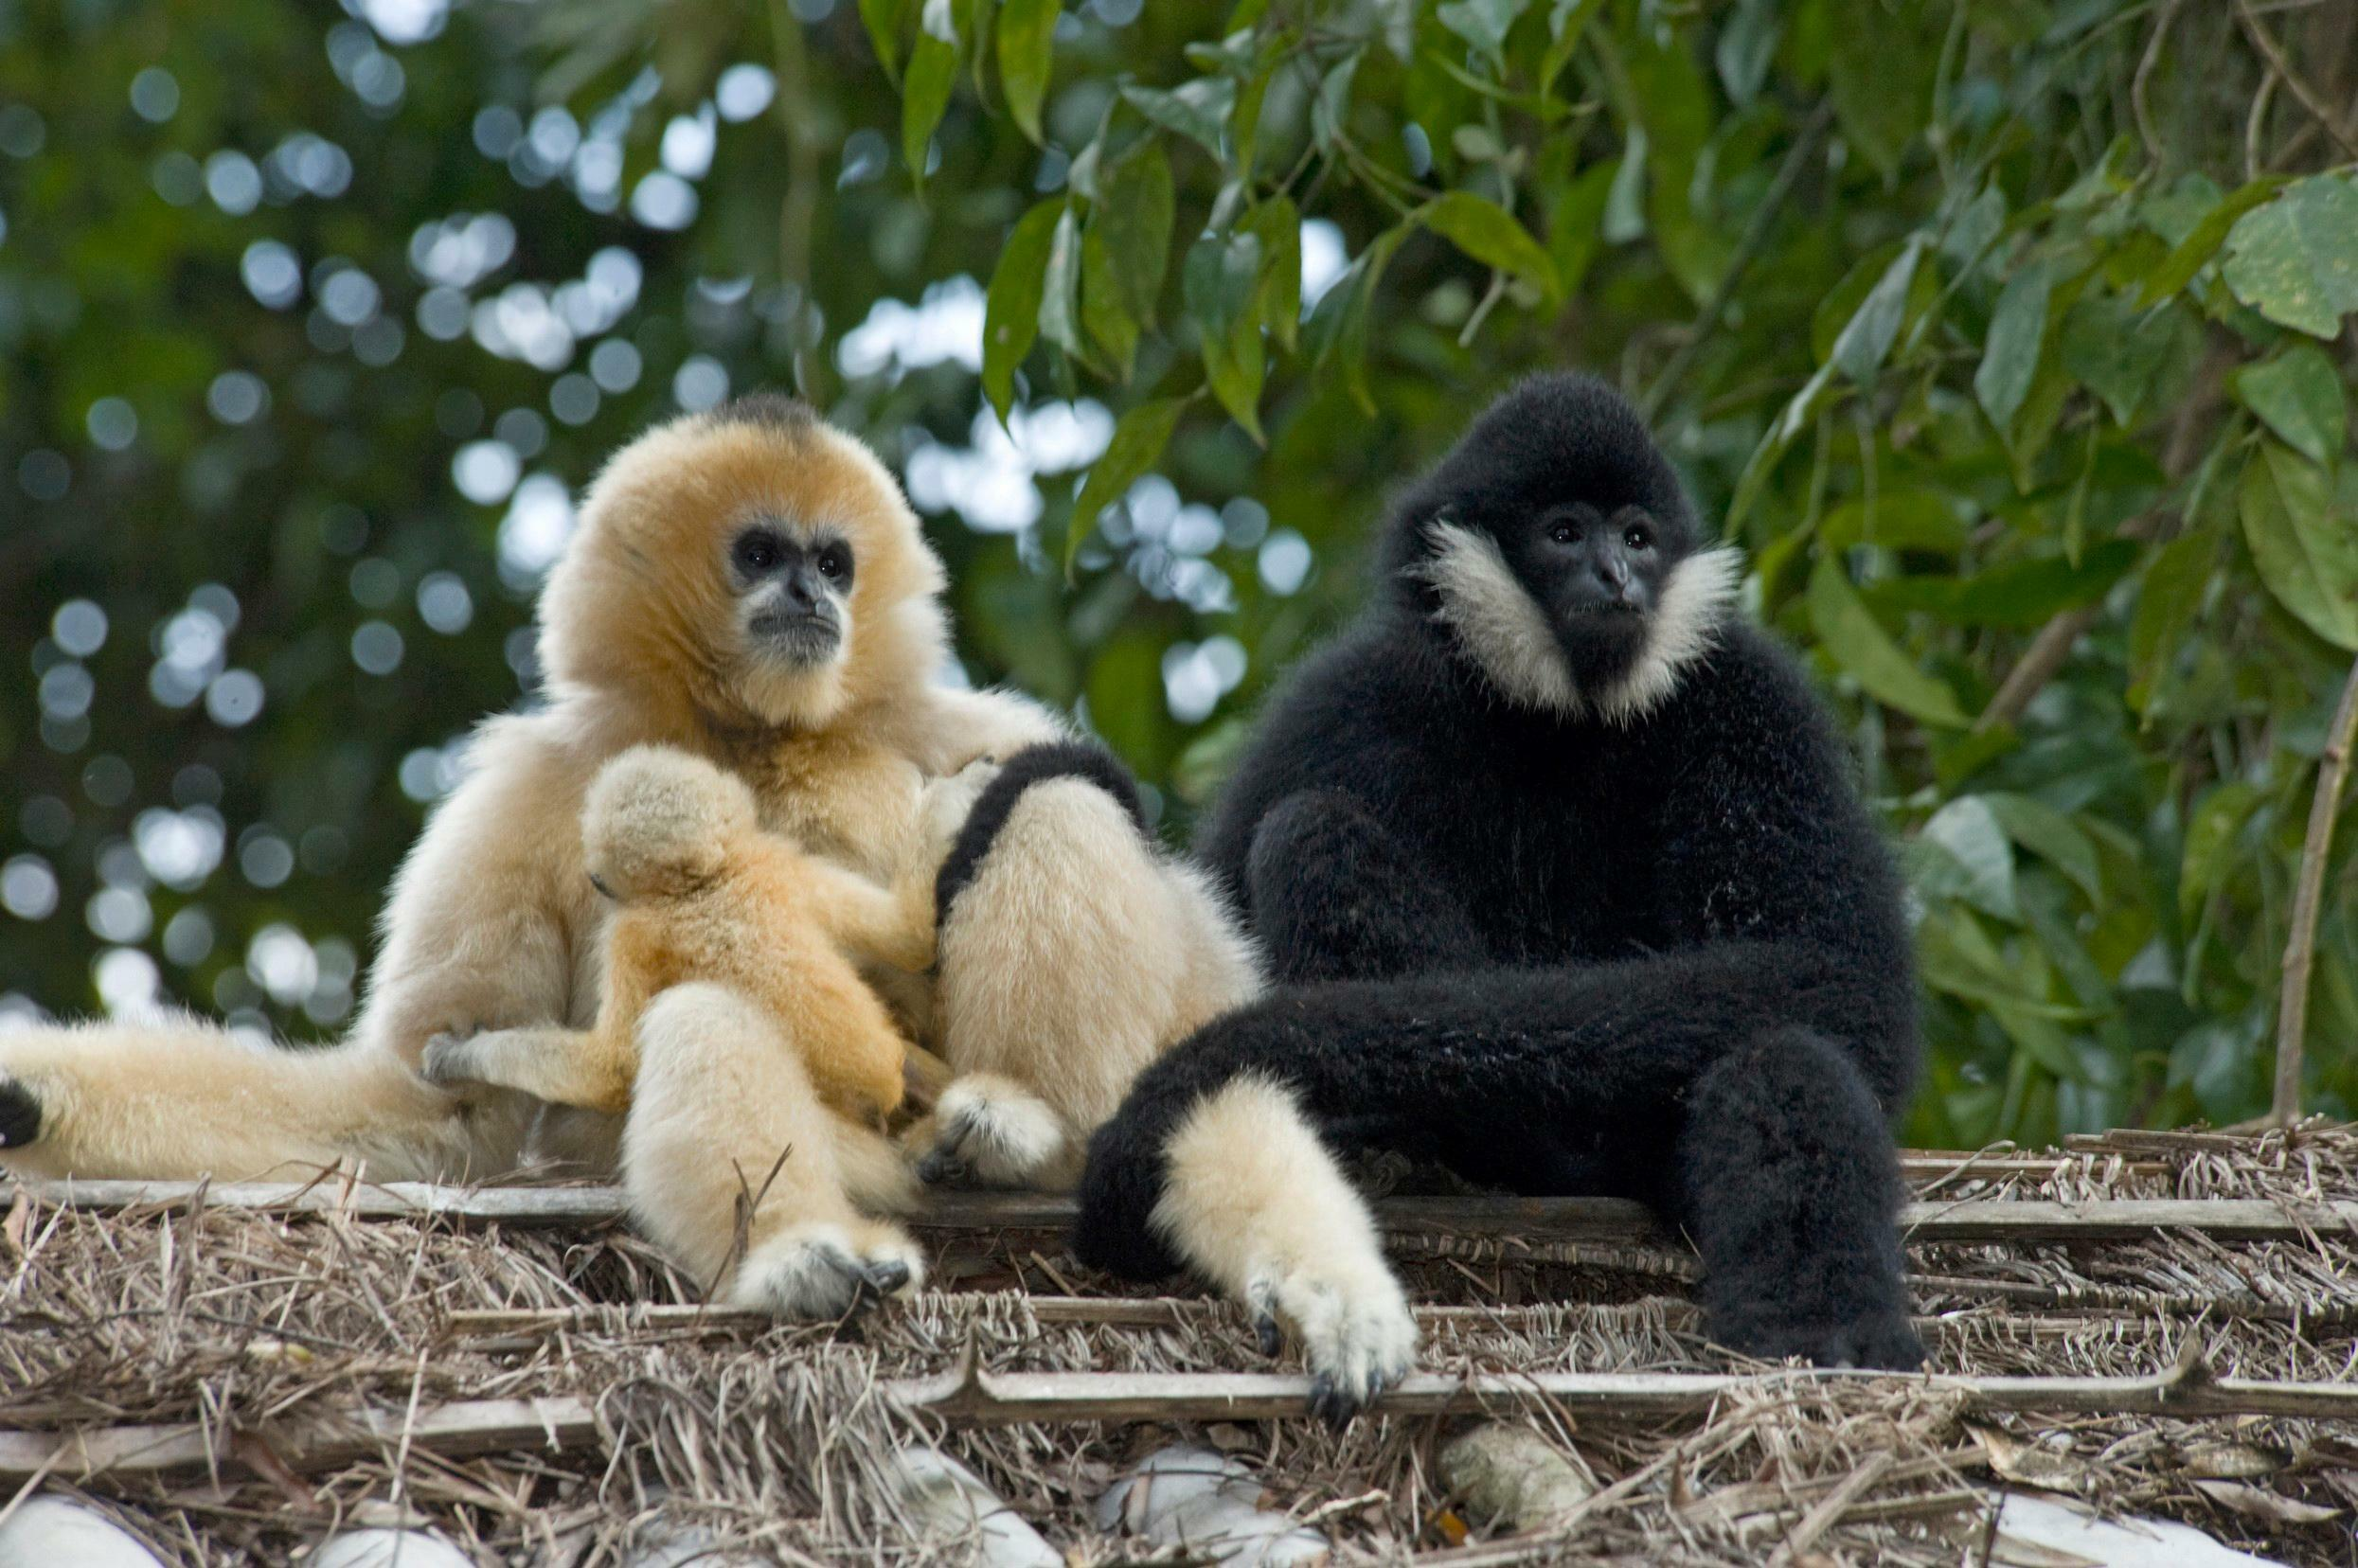 the evolution and adaptations of the tropical rainforest primates the gibbons The major evolutionary trends that distinguish primates and their generalized  mammalian form came as a result of adaptation to arboreal living  the most  widely distributed of non-human primates, ranging from tropical forests to semi- arid deserts and seasonal  eight gibbon species are found in tropical areas of  se asia.